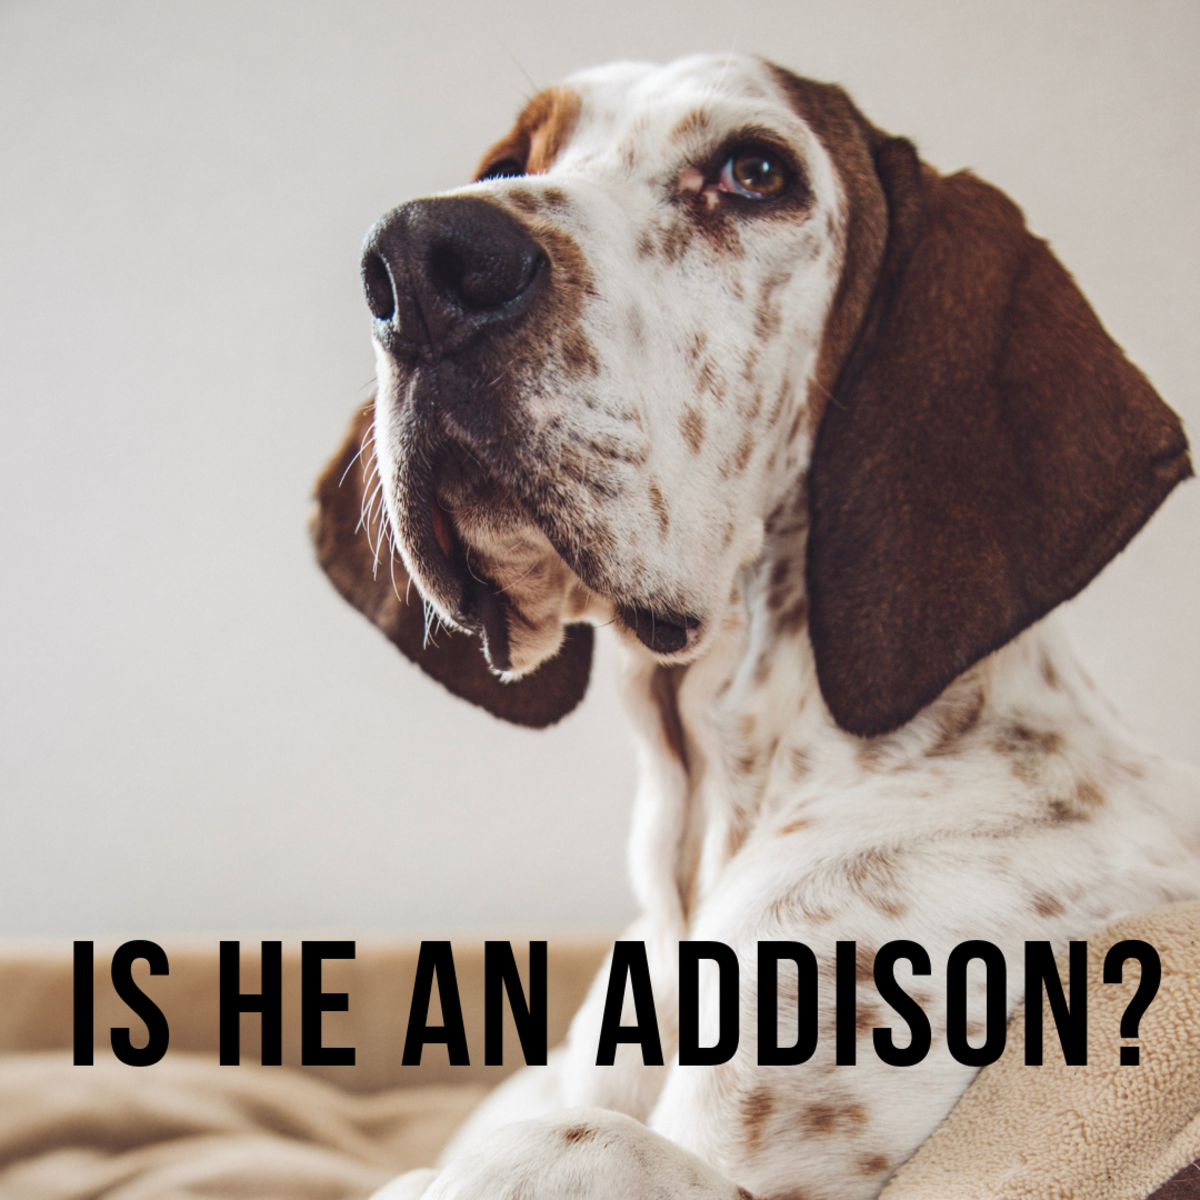 Is he an Addison?